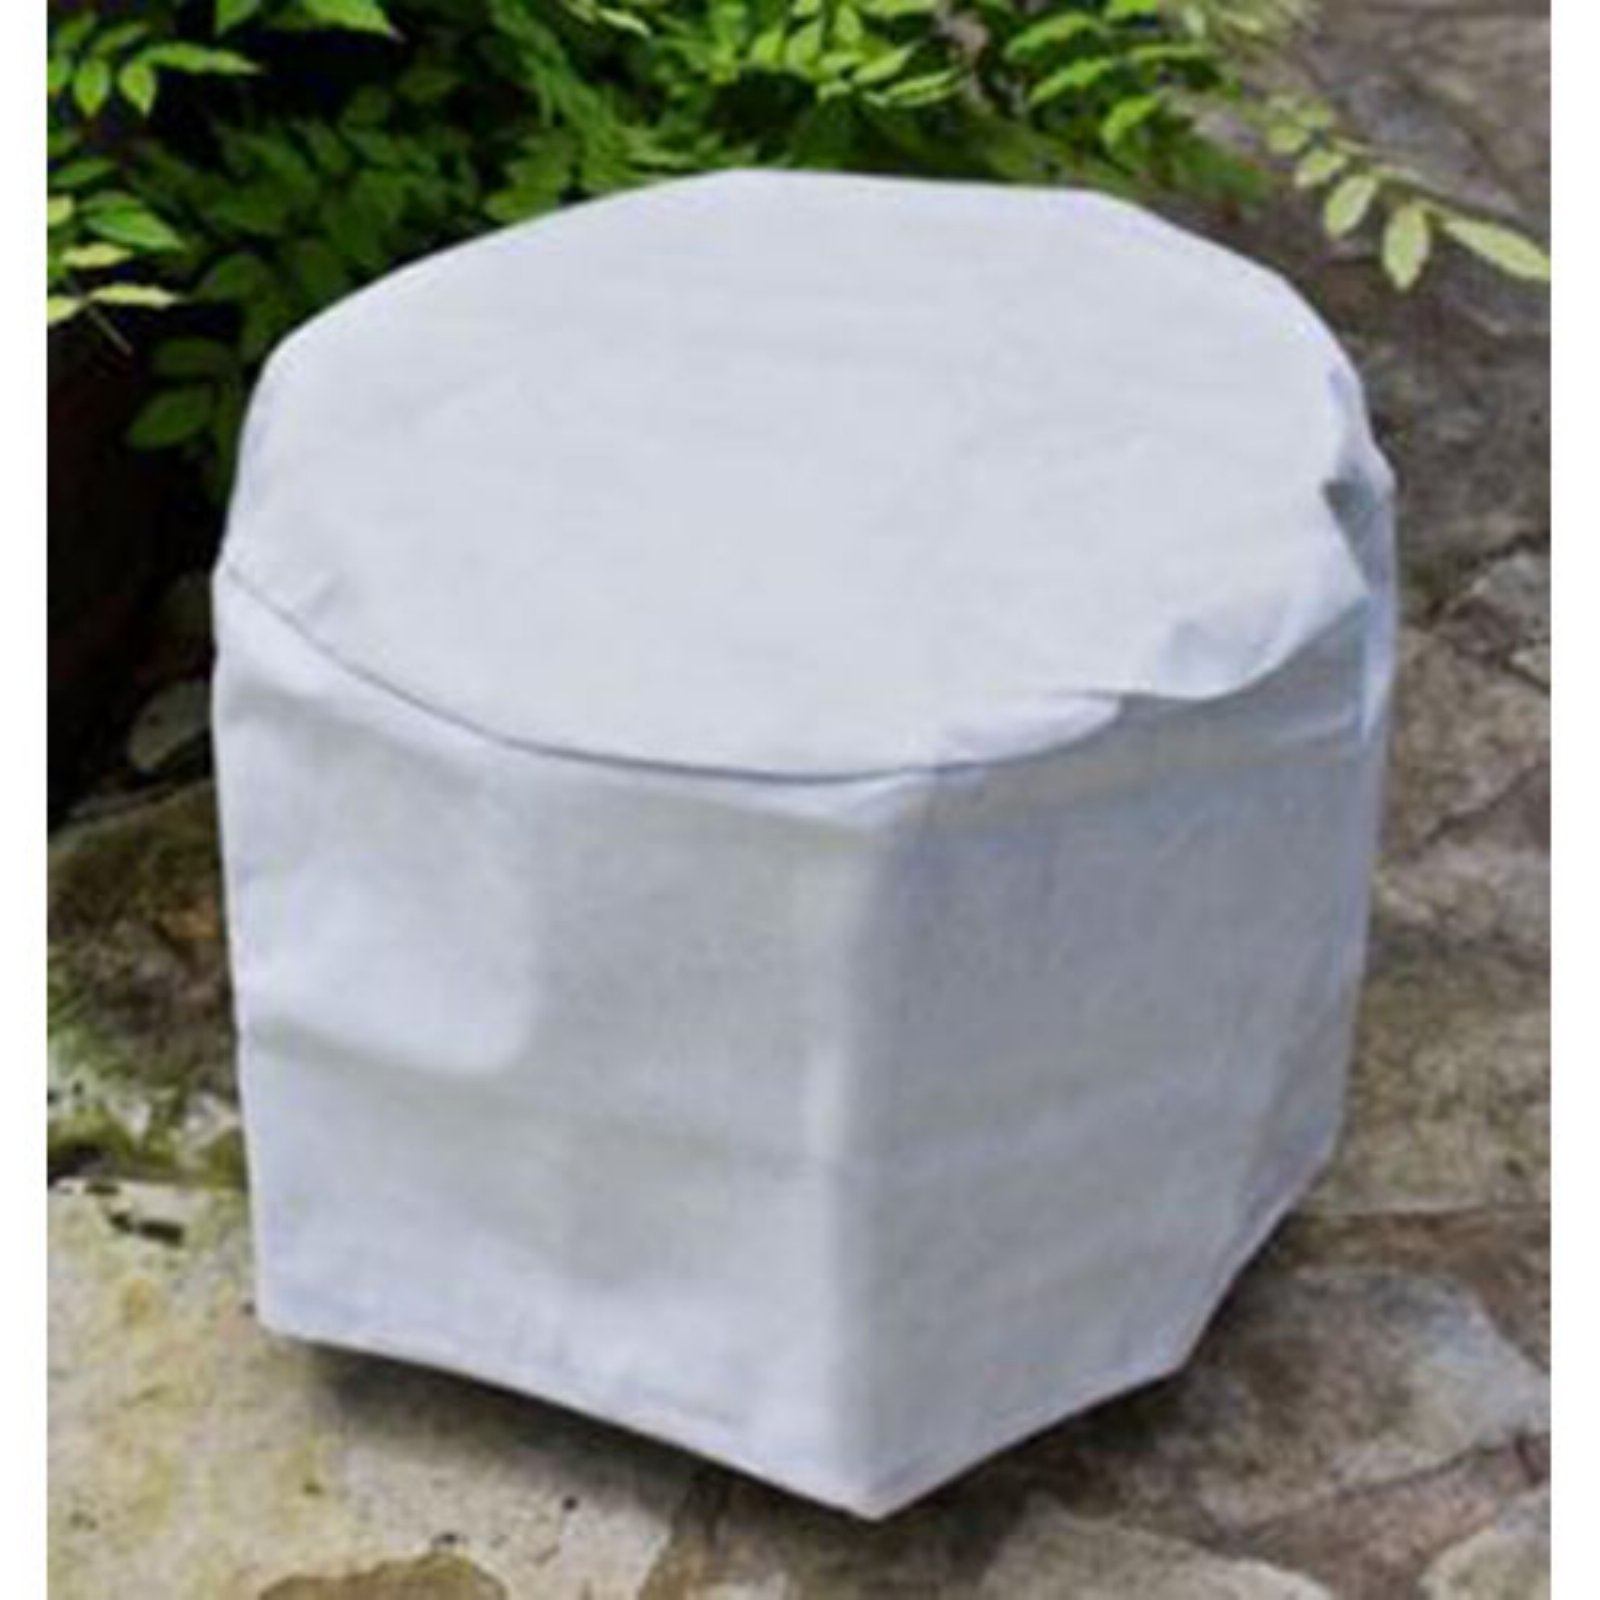 KoverRoos DuPont Tyvek 22 in. White Round Table Cover